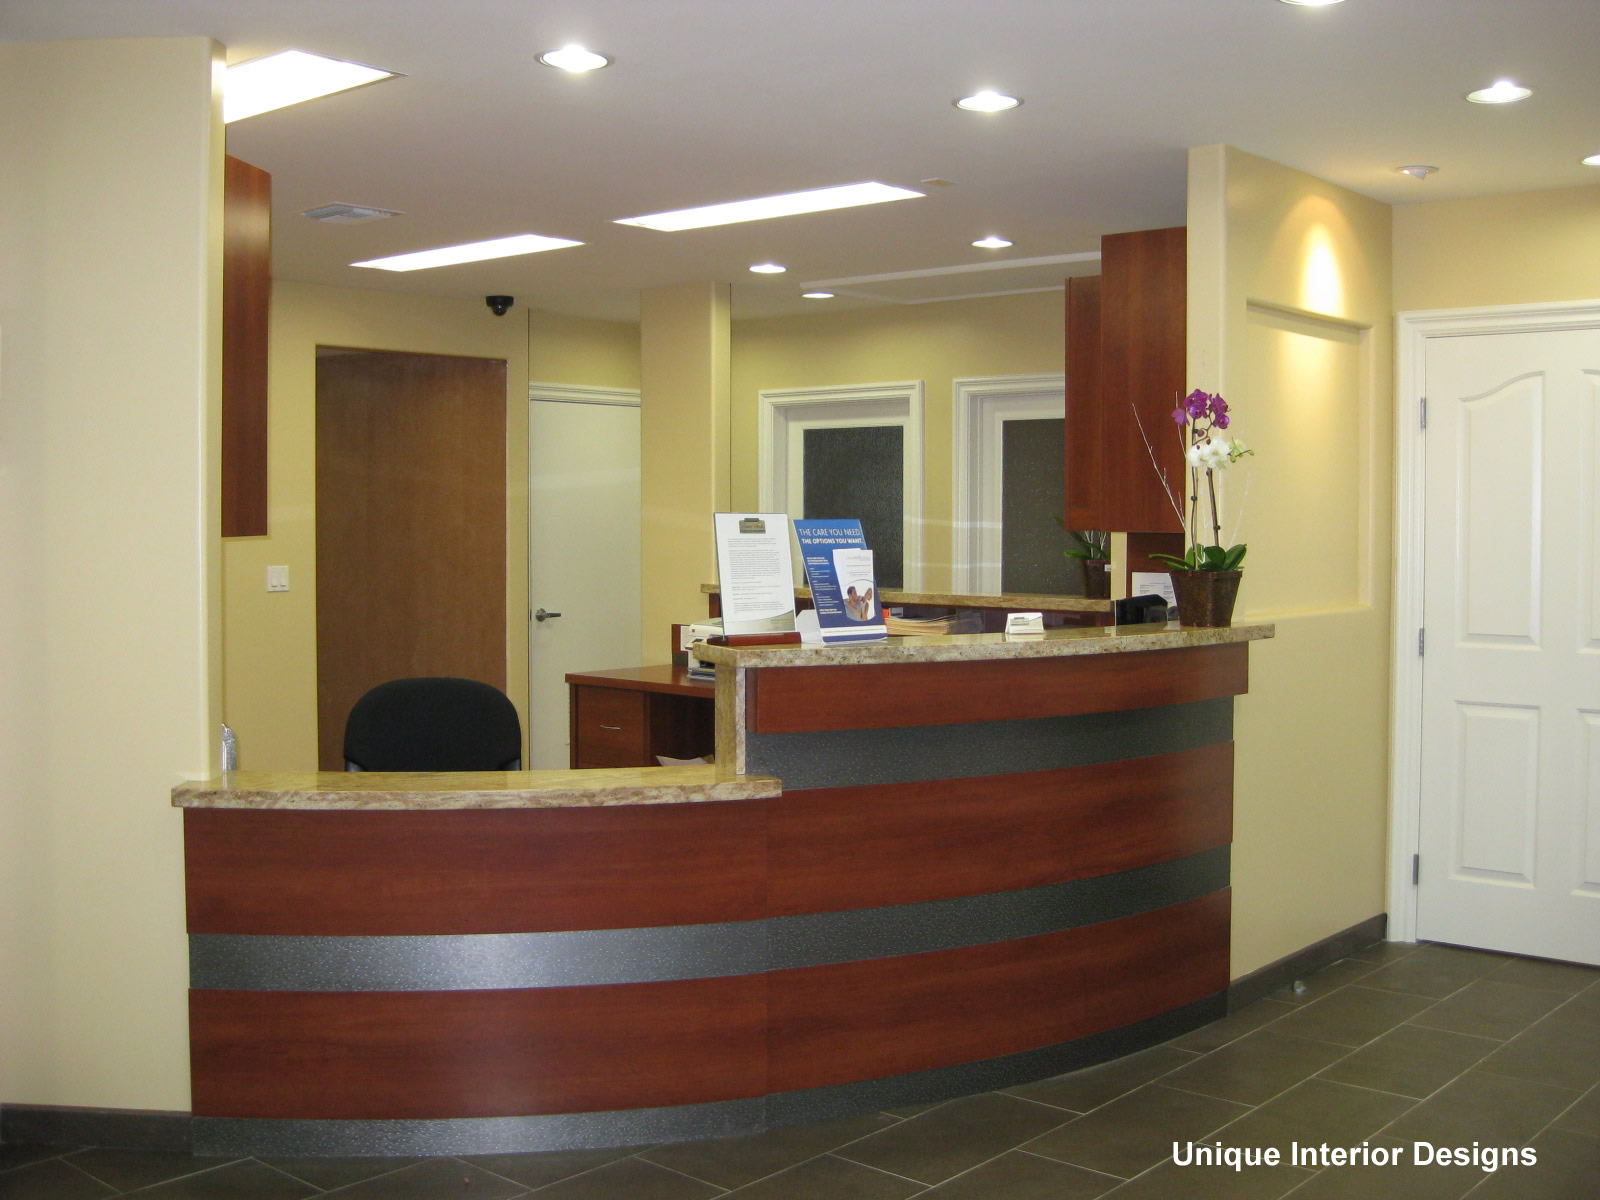 Latest Flooring Designs dental office decorating – flooring choices | unique interior